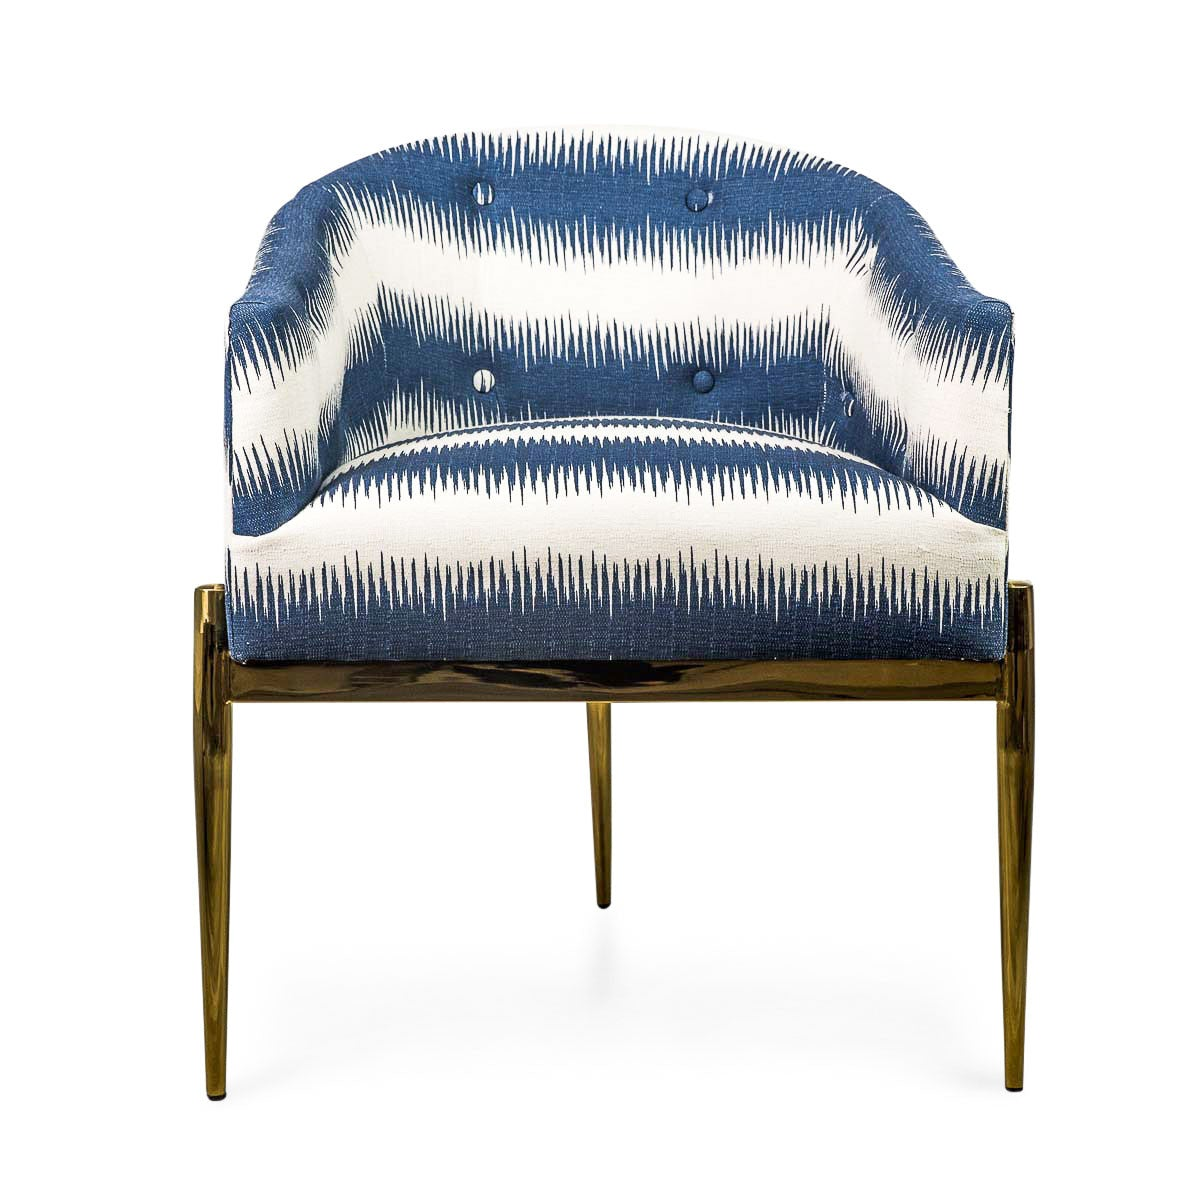 Cool Art Deco Dining Chair Striped Ikat Wingback Chair Modshop Inzonedesignstudio Interior Chair Design Inzonedesignstudiocom